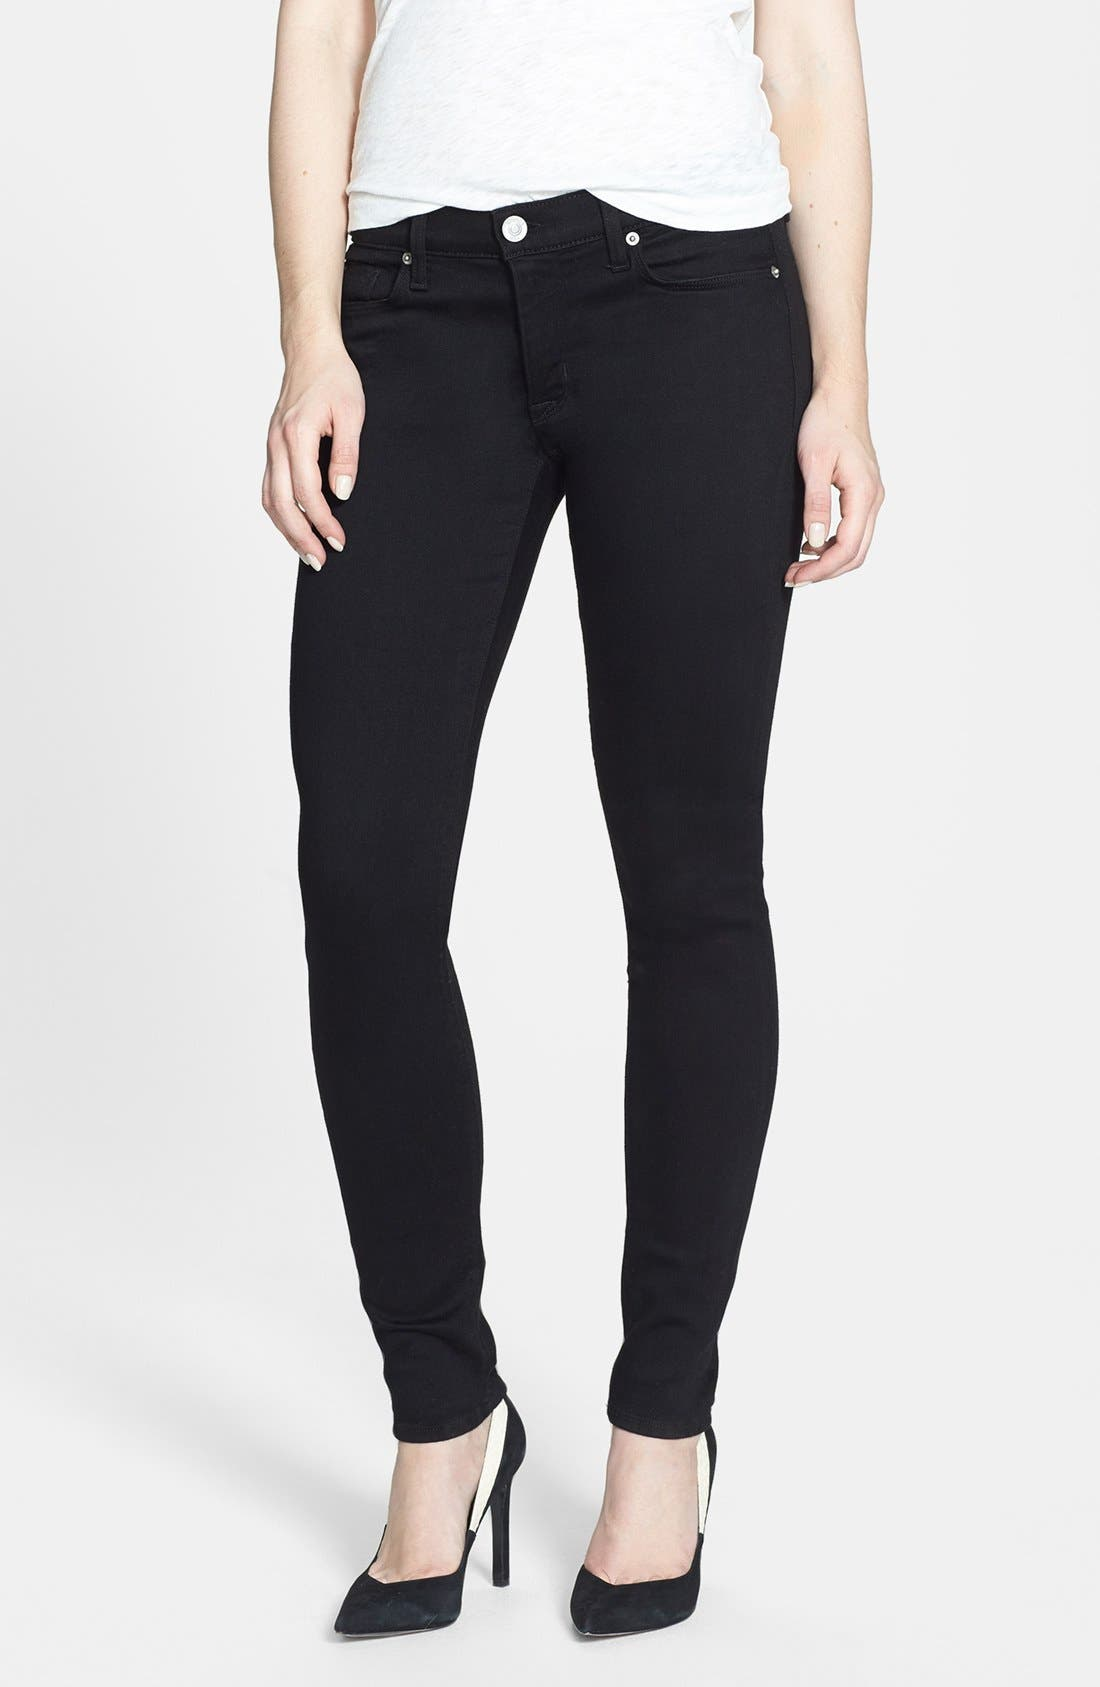 Alternate Image 1 Selected - Hudson Jeans 'Krista' Super Skinny Jeans